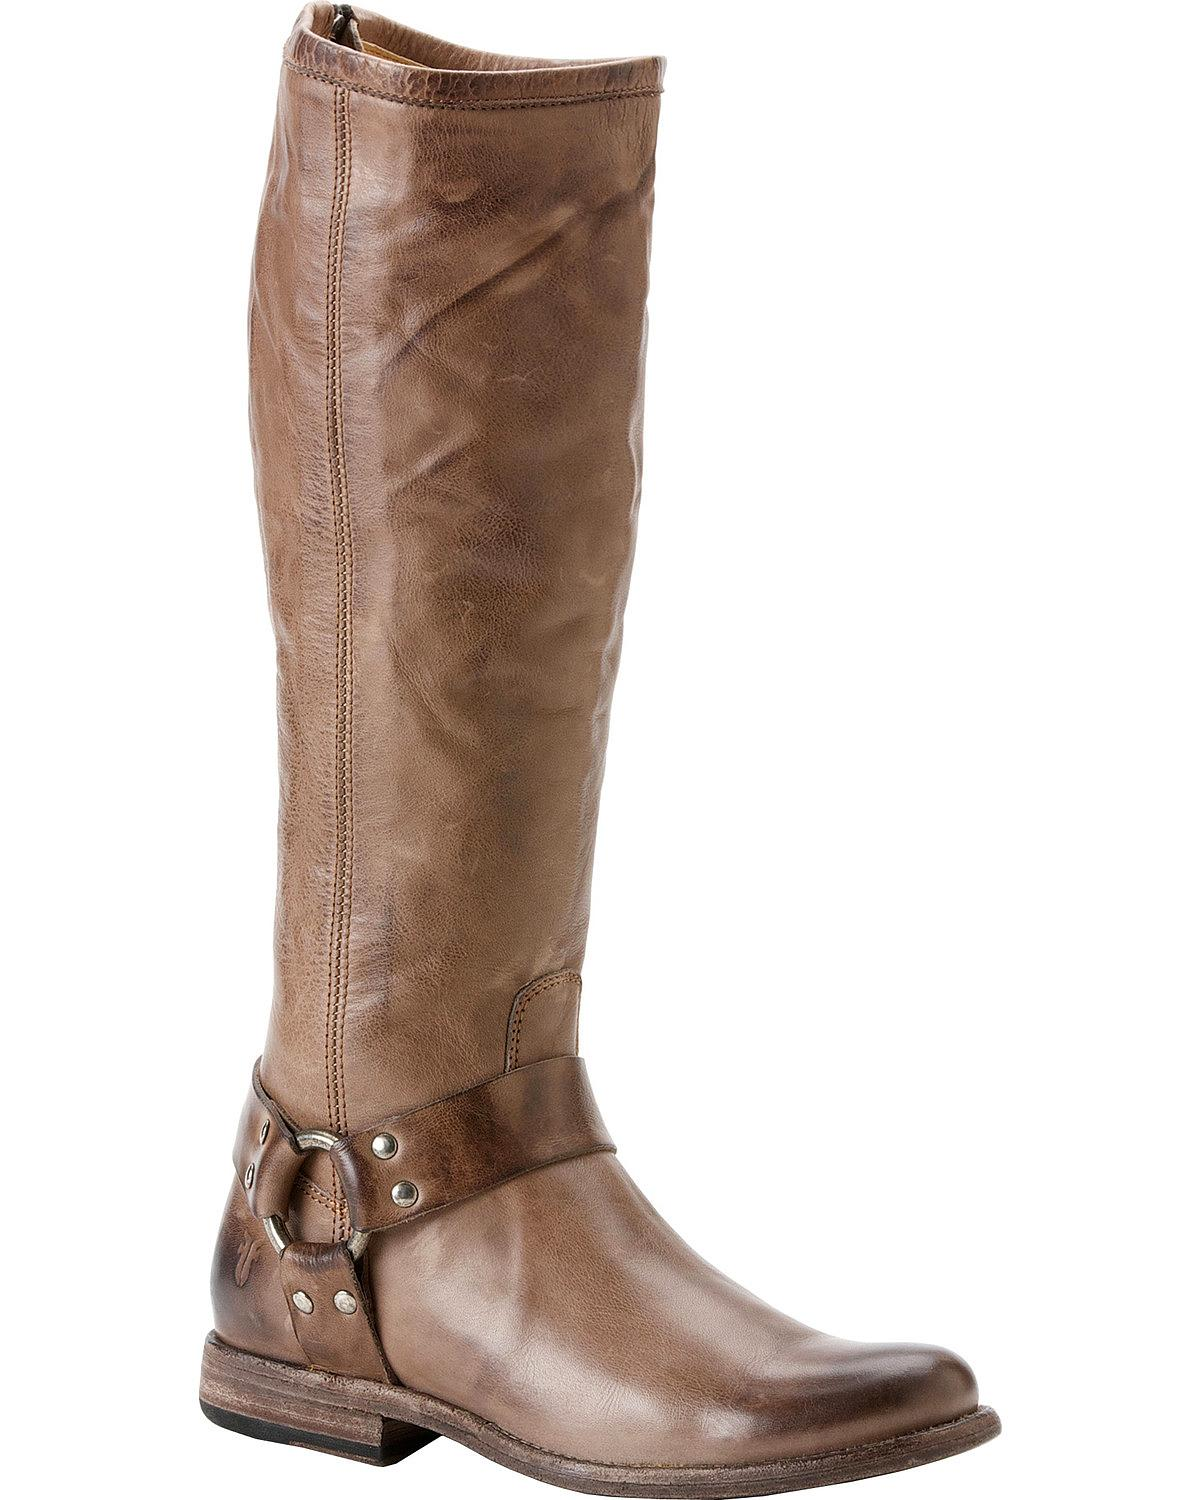 Shop for Men's Western Boots at tusagrano.ml Eligible for free shipping and free returns.